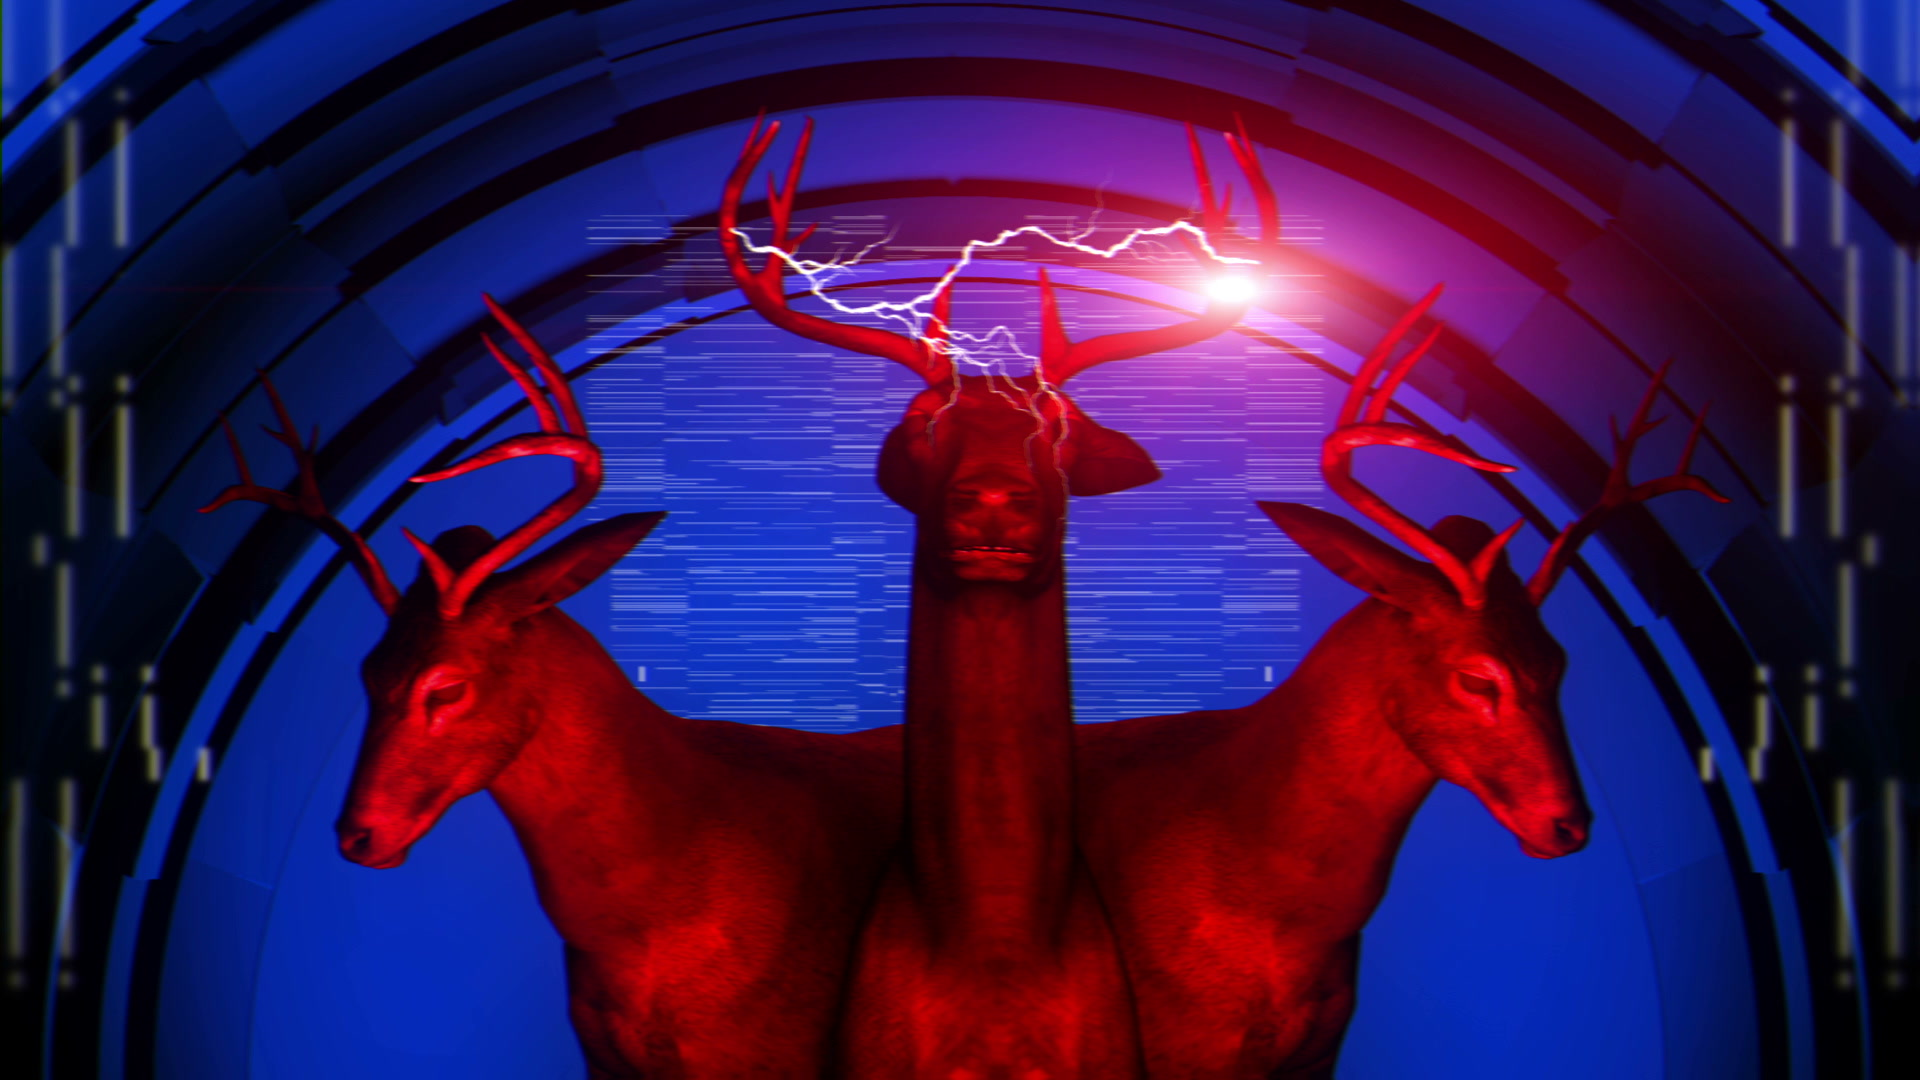 vj video background Red-Deer-LIMEART-FullHD-Vj-Loop_003